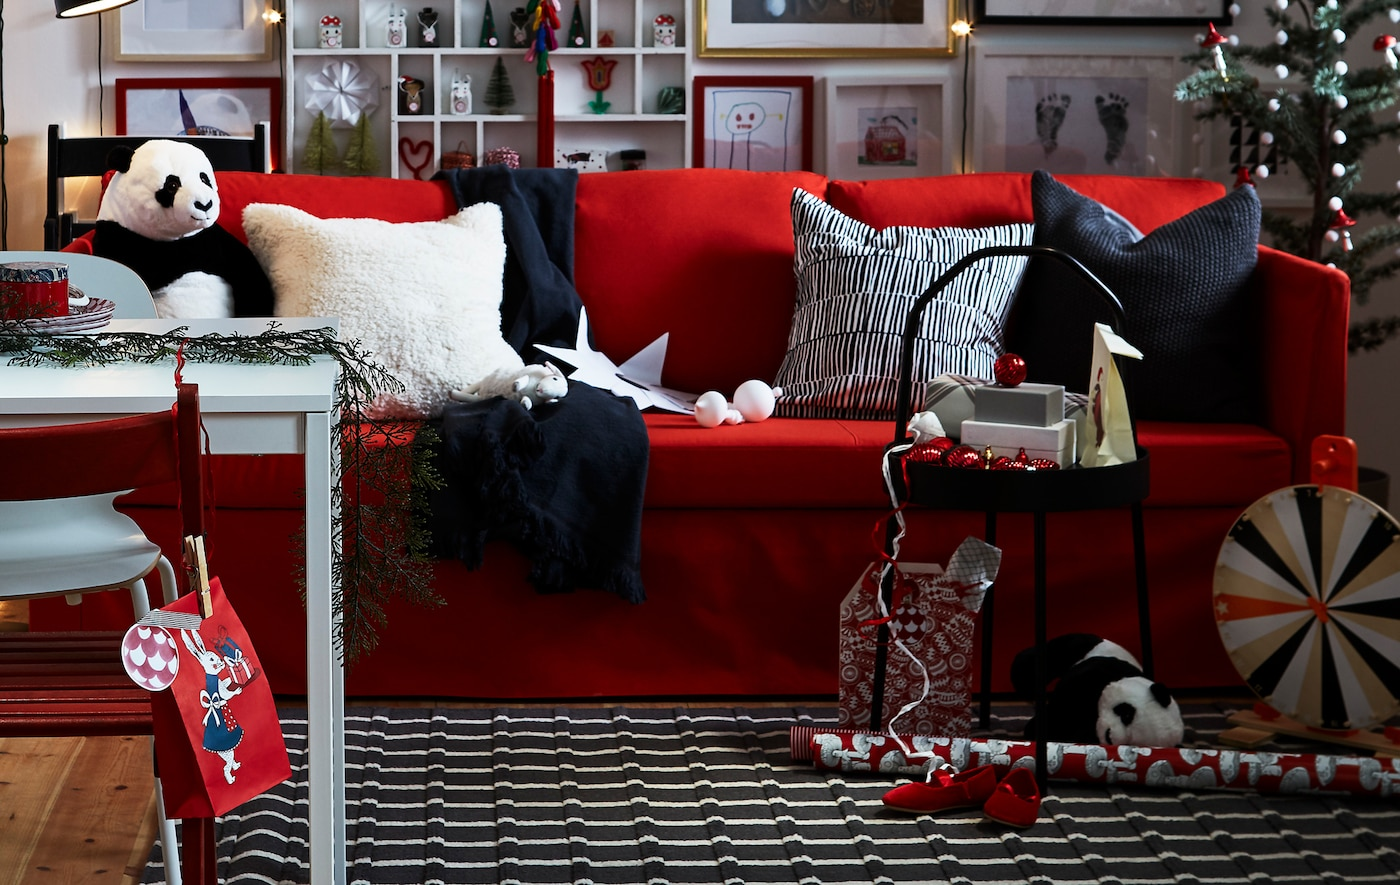 A red, black and white living room with plenty of personal details and flexible furniture creates a warm and cosy atmosphere.